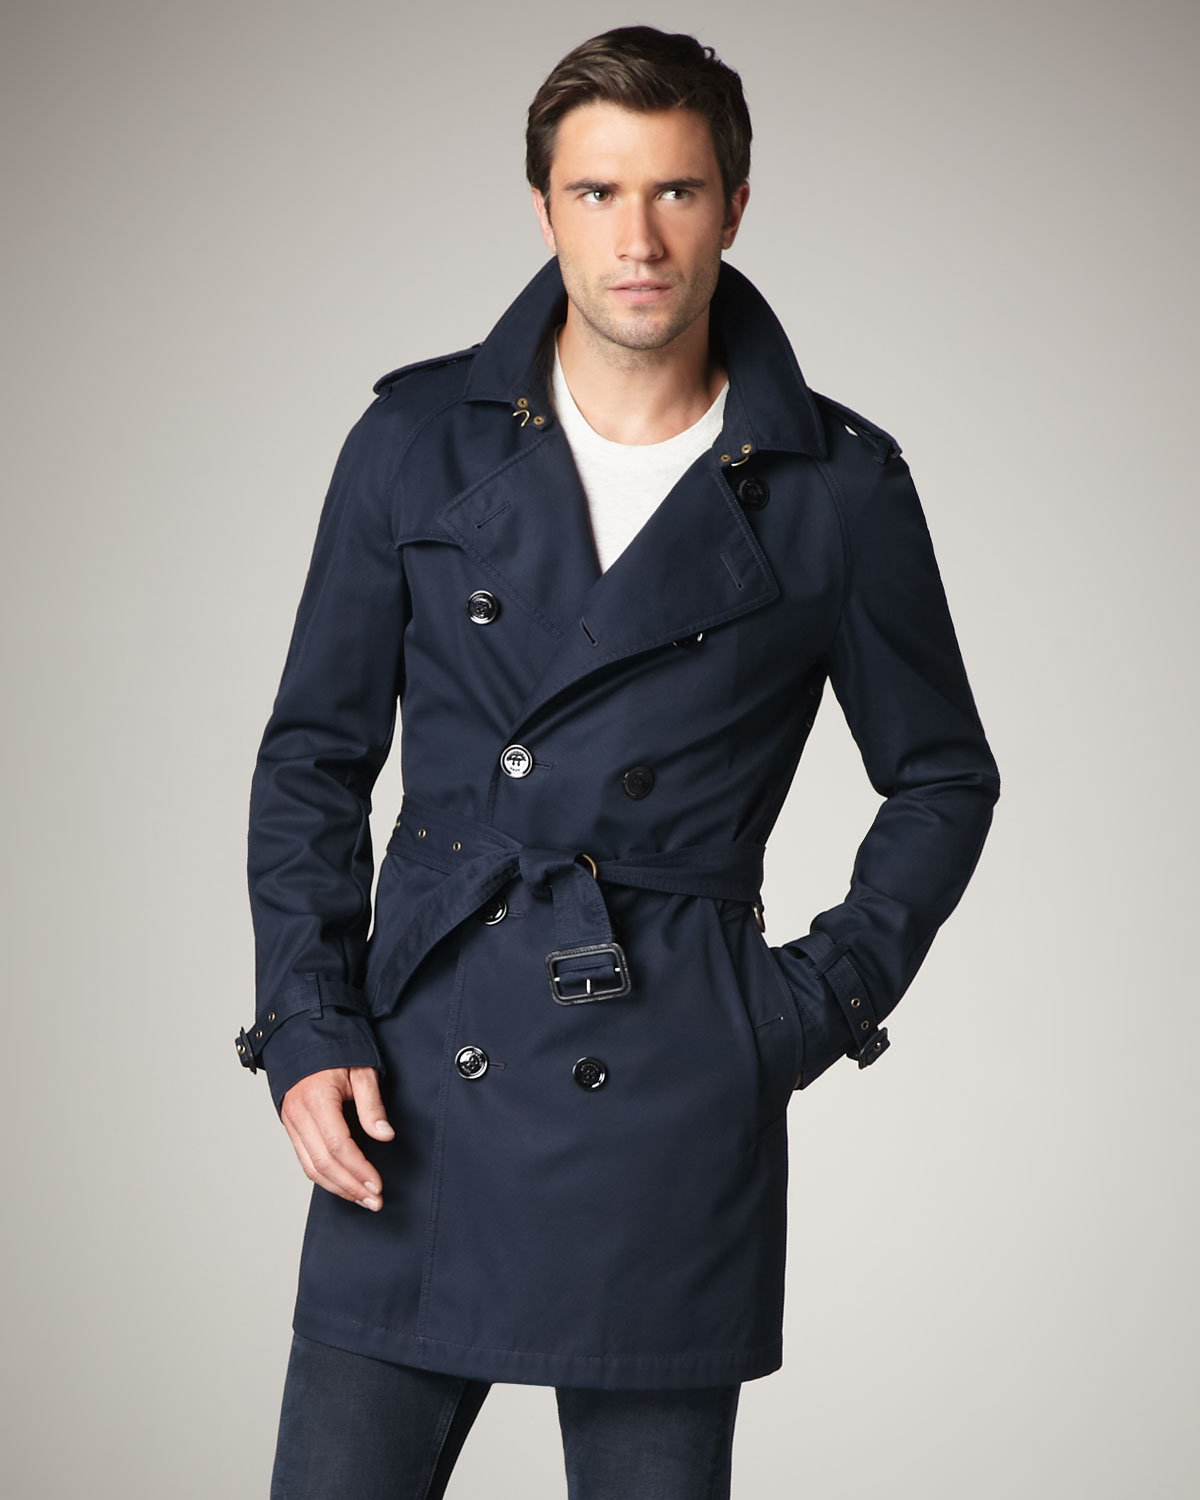 Forever 21 Jackets Mens